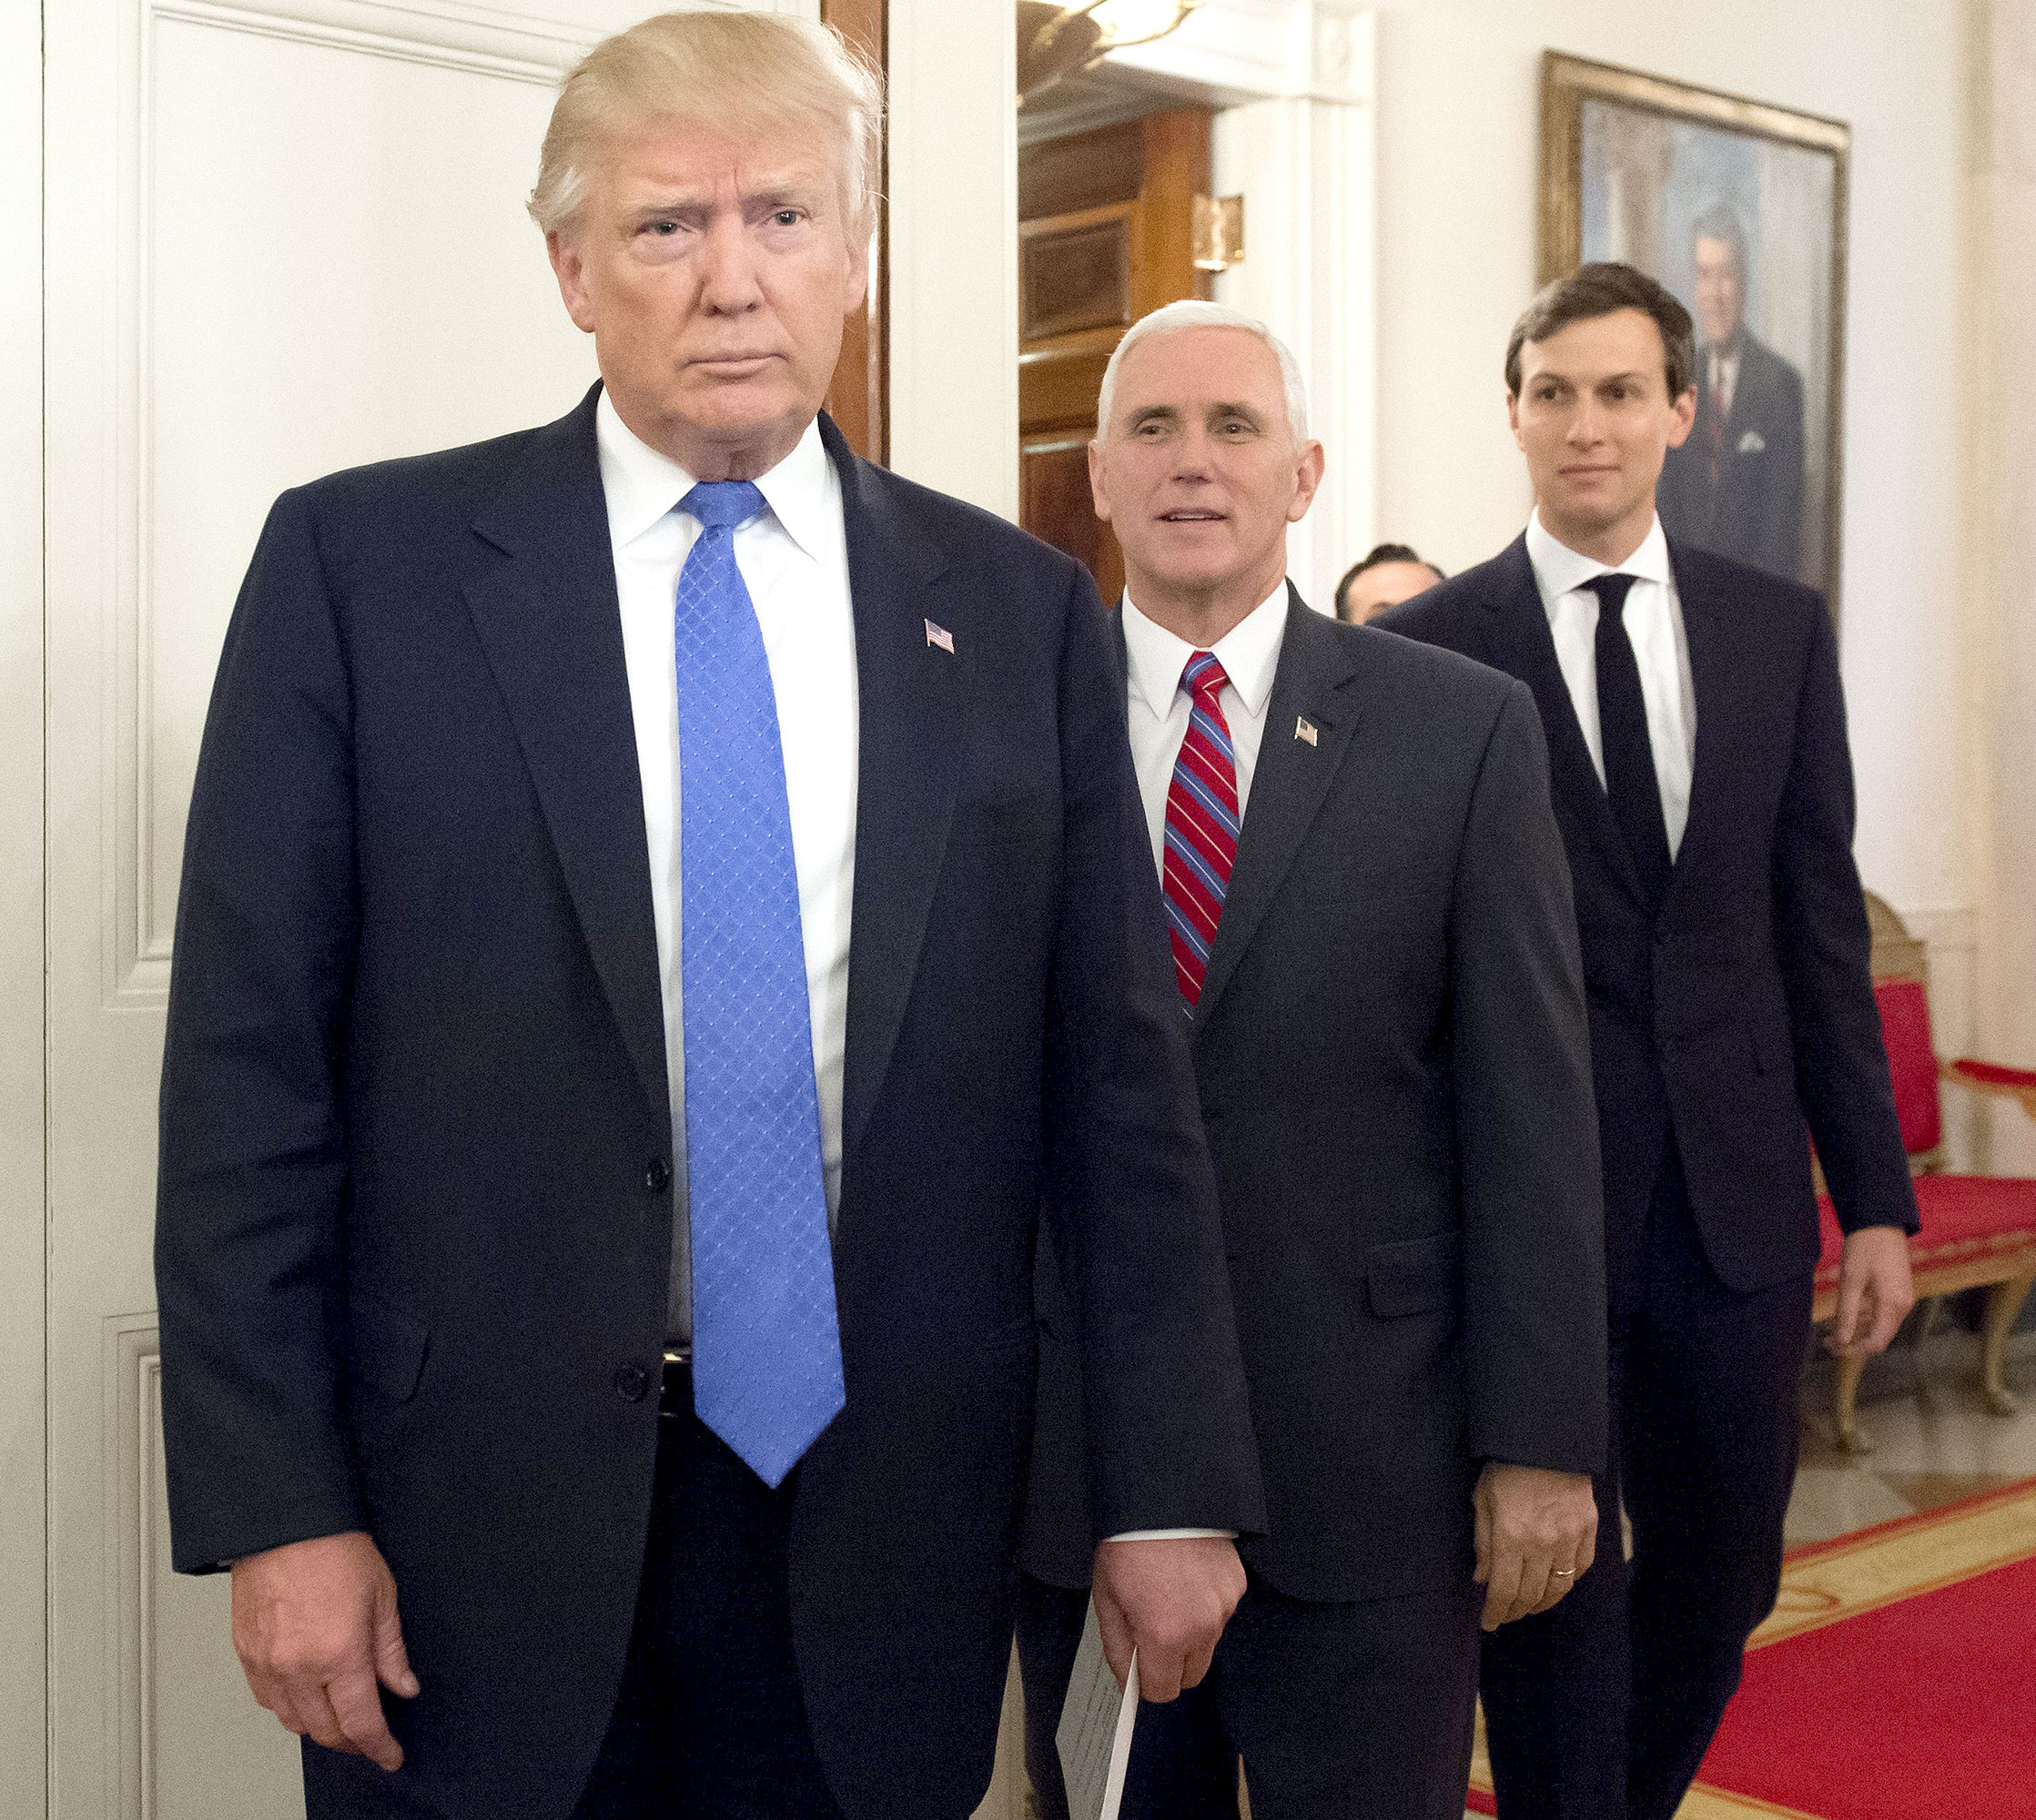 US President Donald Trump arrives alongside Vice President Mike Pence (C) and White House Senior Advisor Jared Kushner (R) during a meeting with manufacturing CEOs in the State Dining Room at the White House in Washington, DC, February 23, 2017.